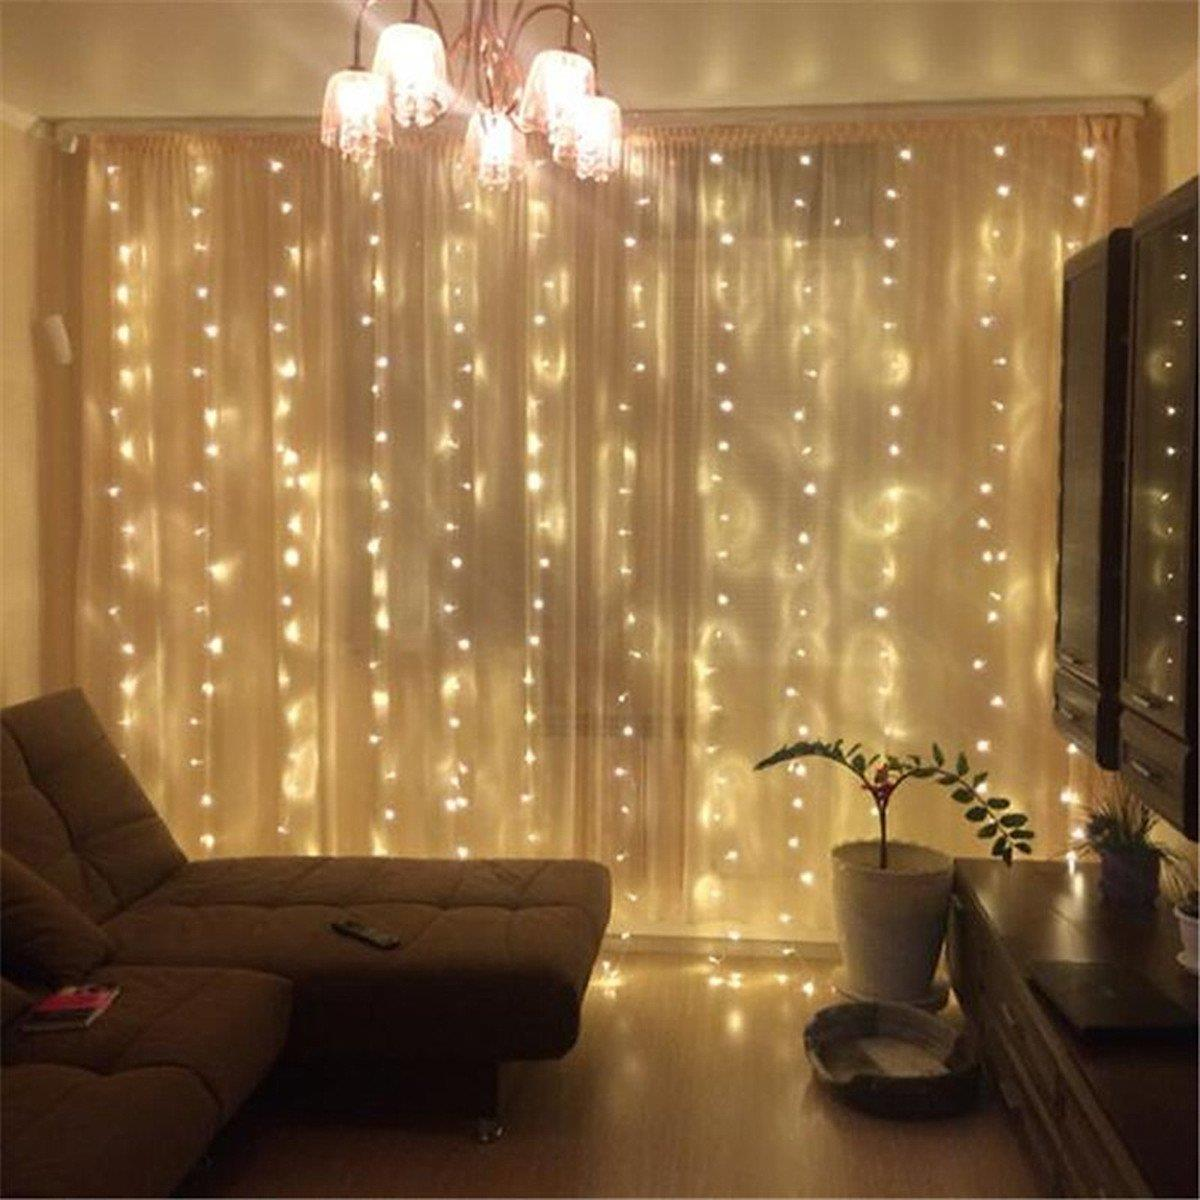 Ktaxon 5-Pack 300 LED Curtain Lights 9.8ft x 9.8ft - String Icicle & Ktaxon 5-Pack 300 LED Curtain Lights 9.8ft x 9.8ft - String Icicle ...